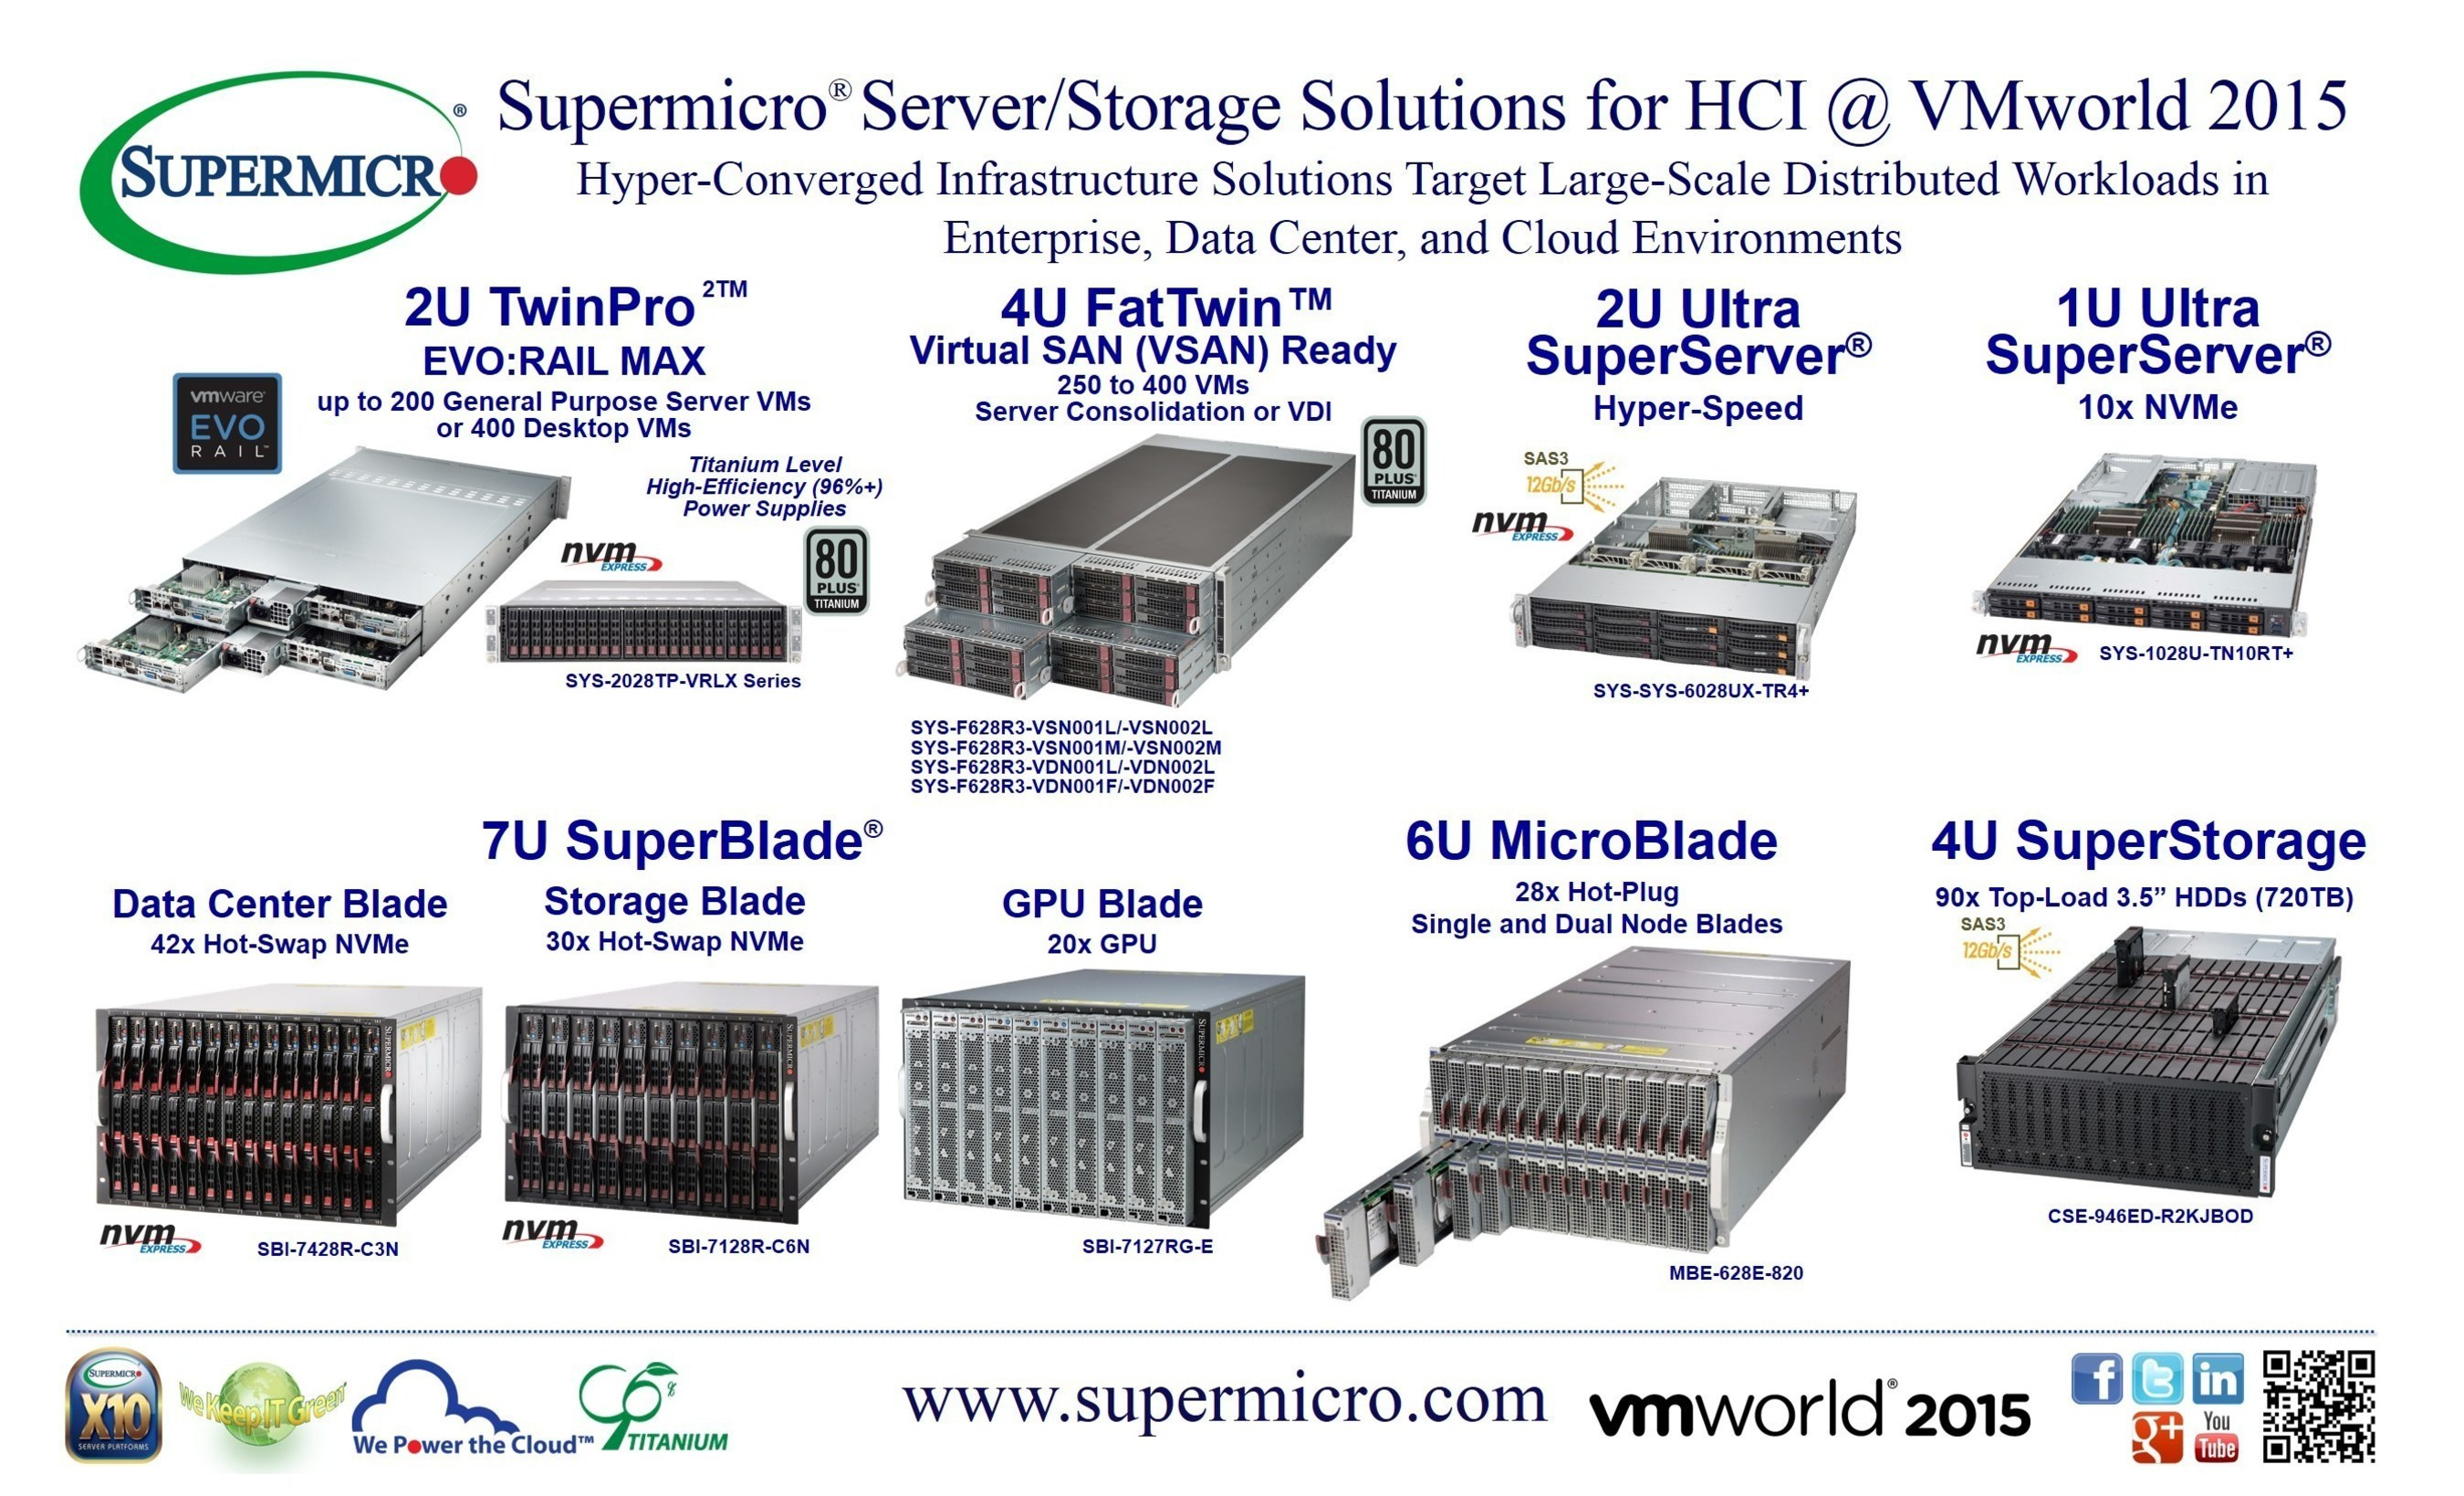 Supermicro® Exhibits All-NVMe Server and Storage Solutions